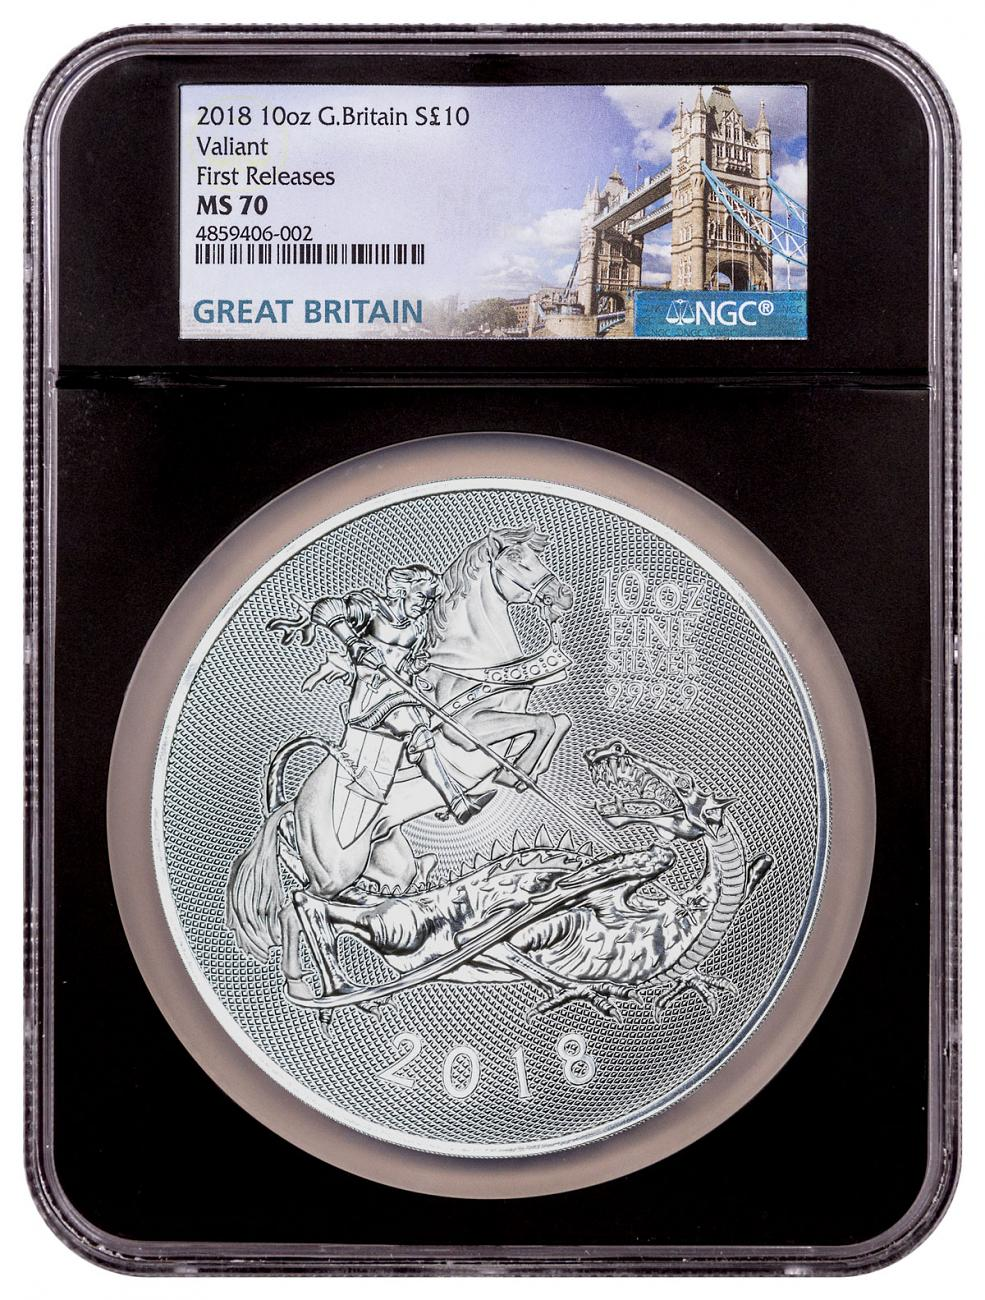 2018 Great Britain 10 oz Incused Silver Valiant £10 Coin NGC MS70 FR Black Core Holder